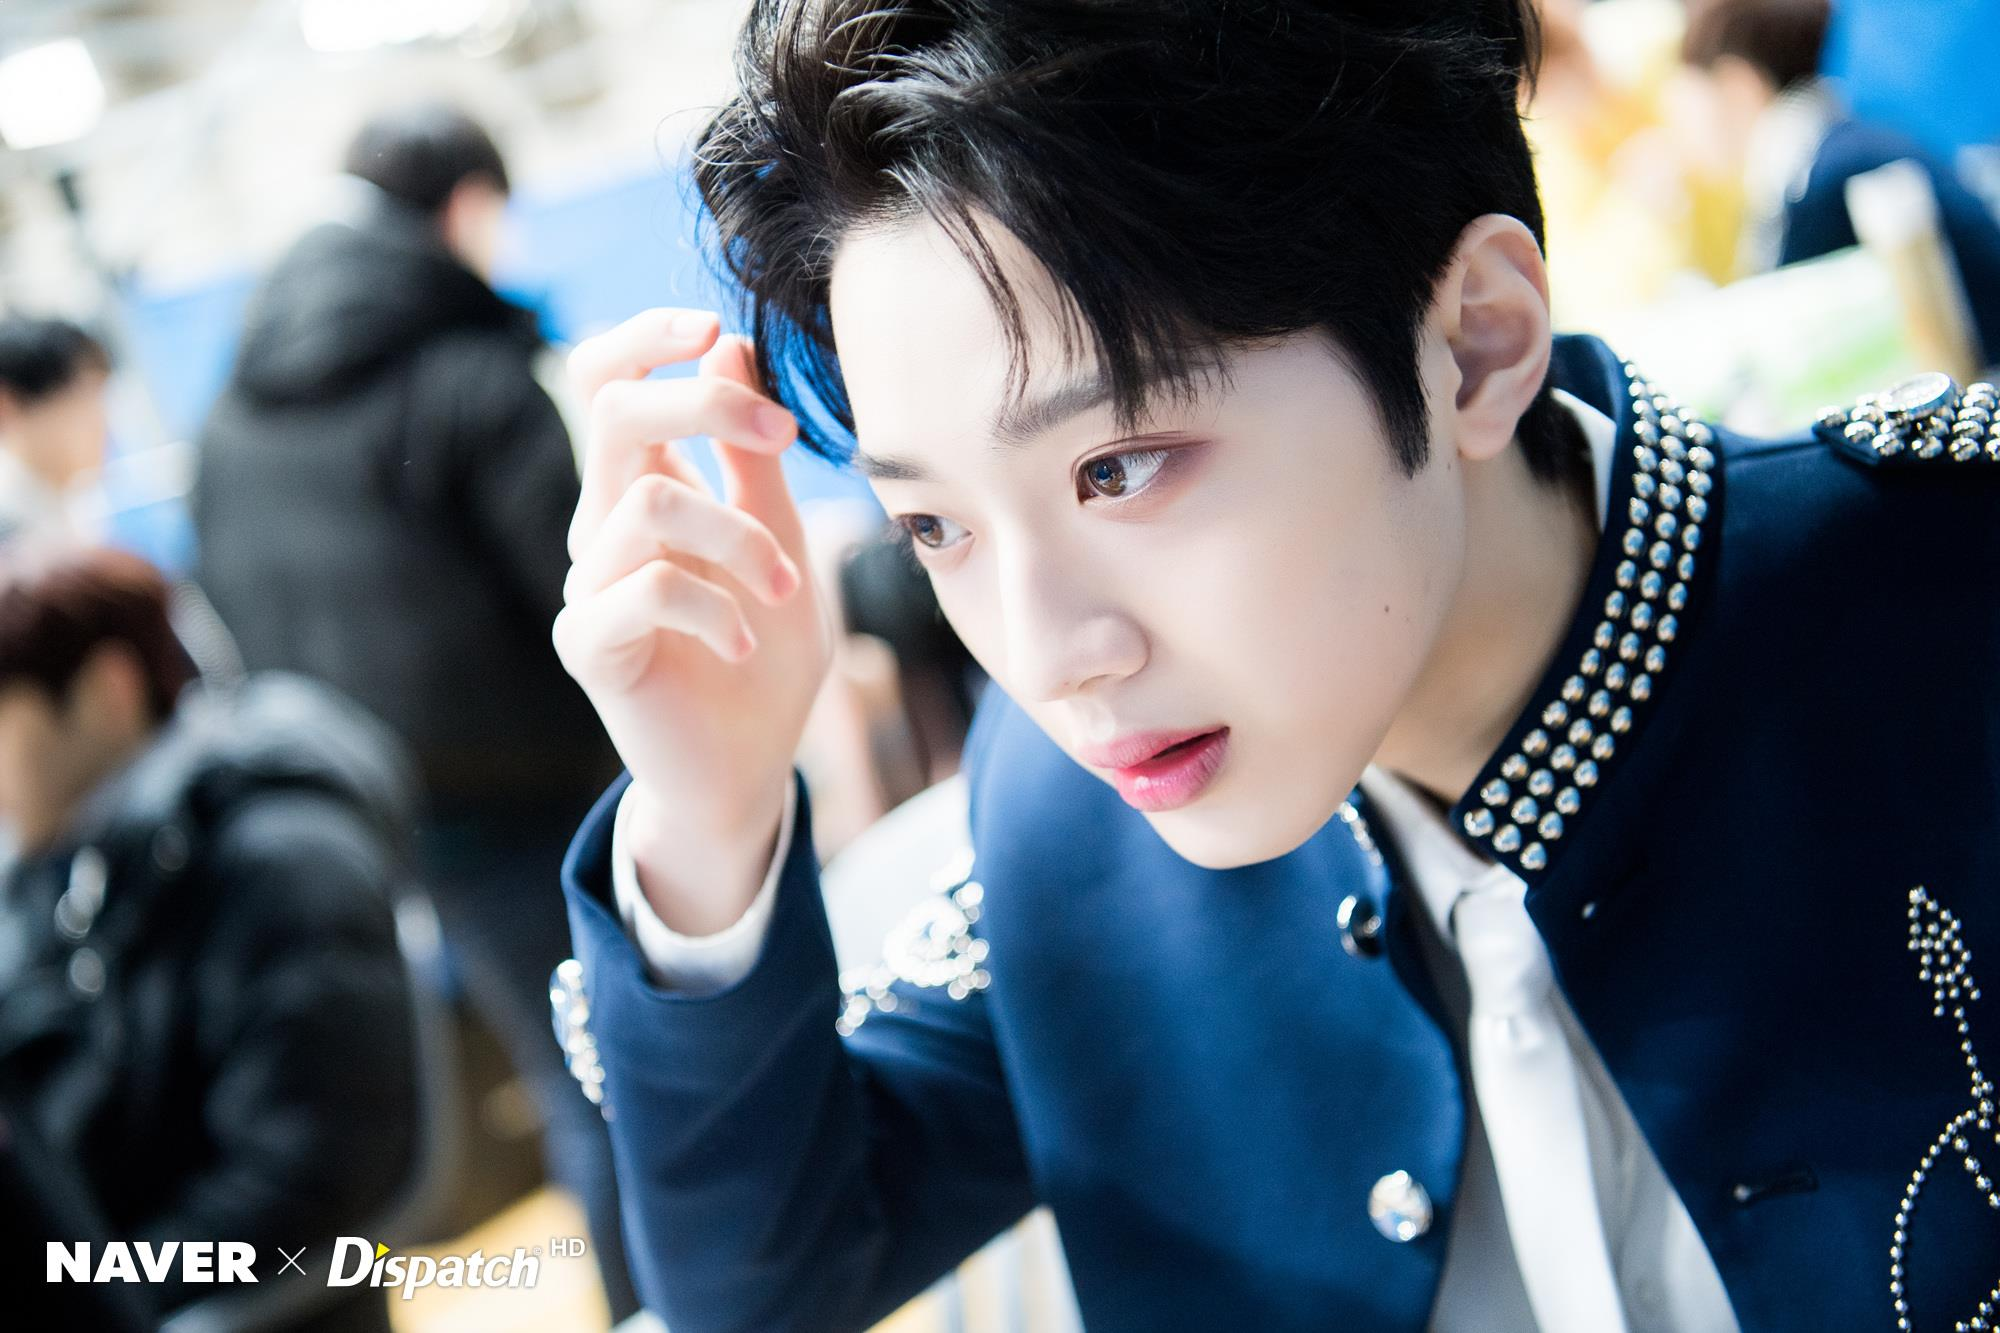 Lai KuanLin Profile, Lai KuanLin, KPop Idol Eyebrows